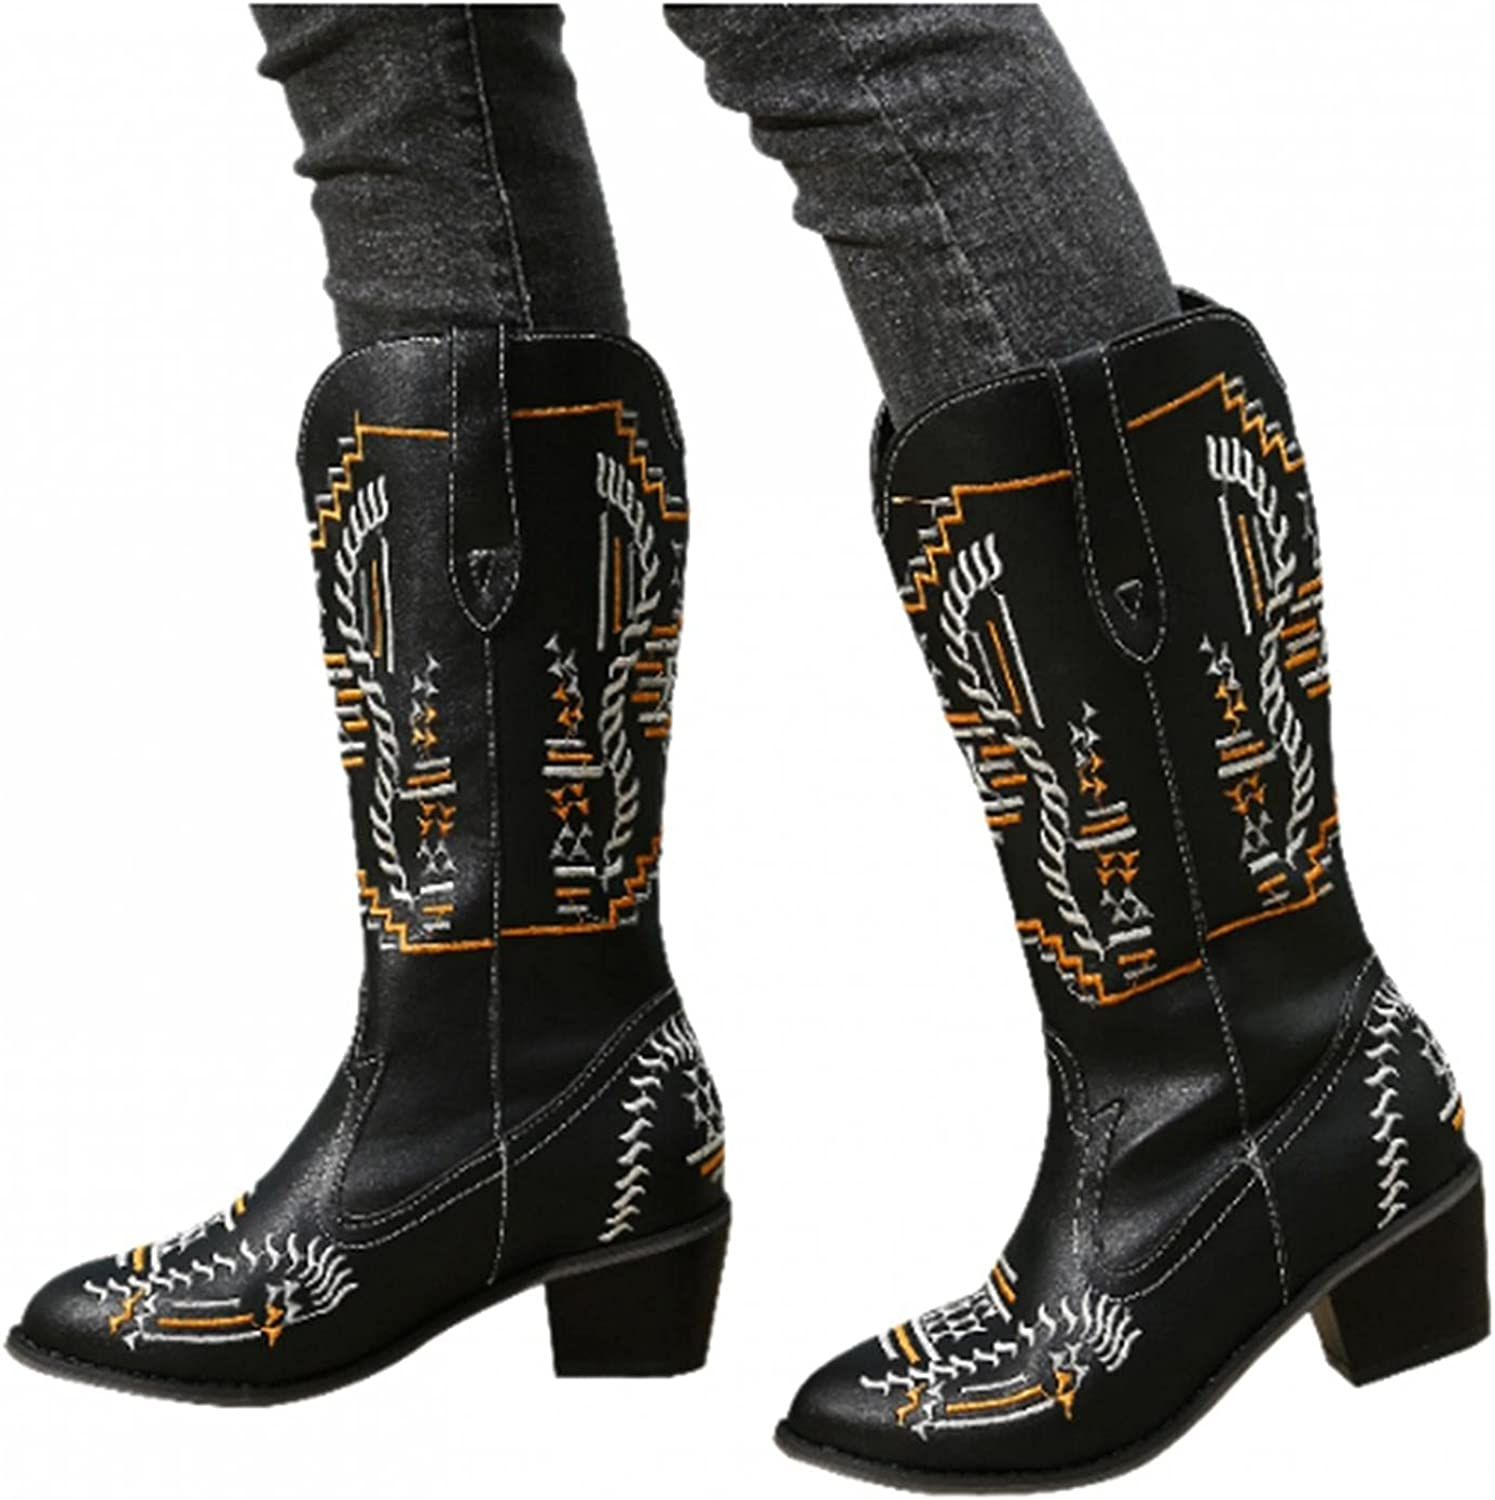 Gibobby Cowboy Boots for Women,Womens Embroidery Cowgirl Boots Mid Calf Boots Chunky Heel Retro Square Toe Slip On Boots